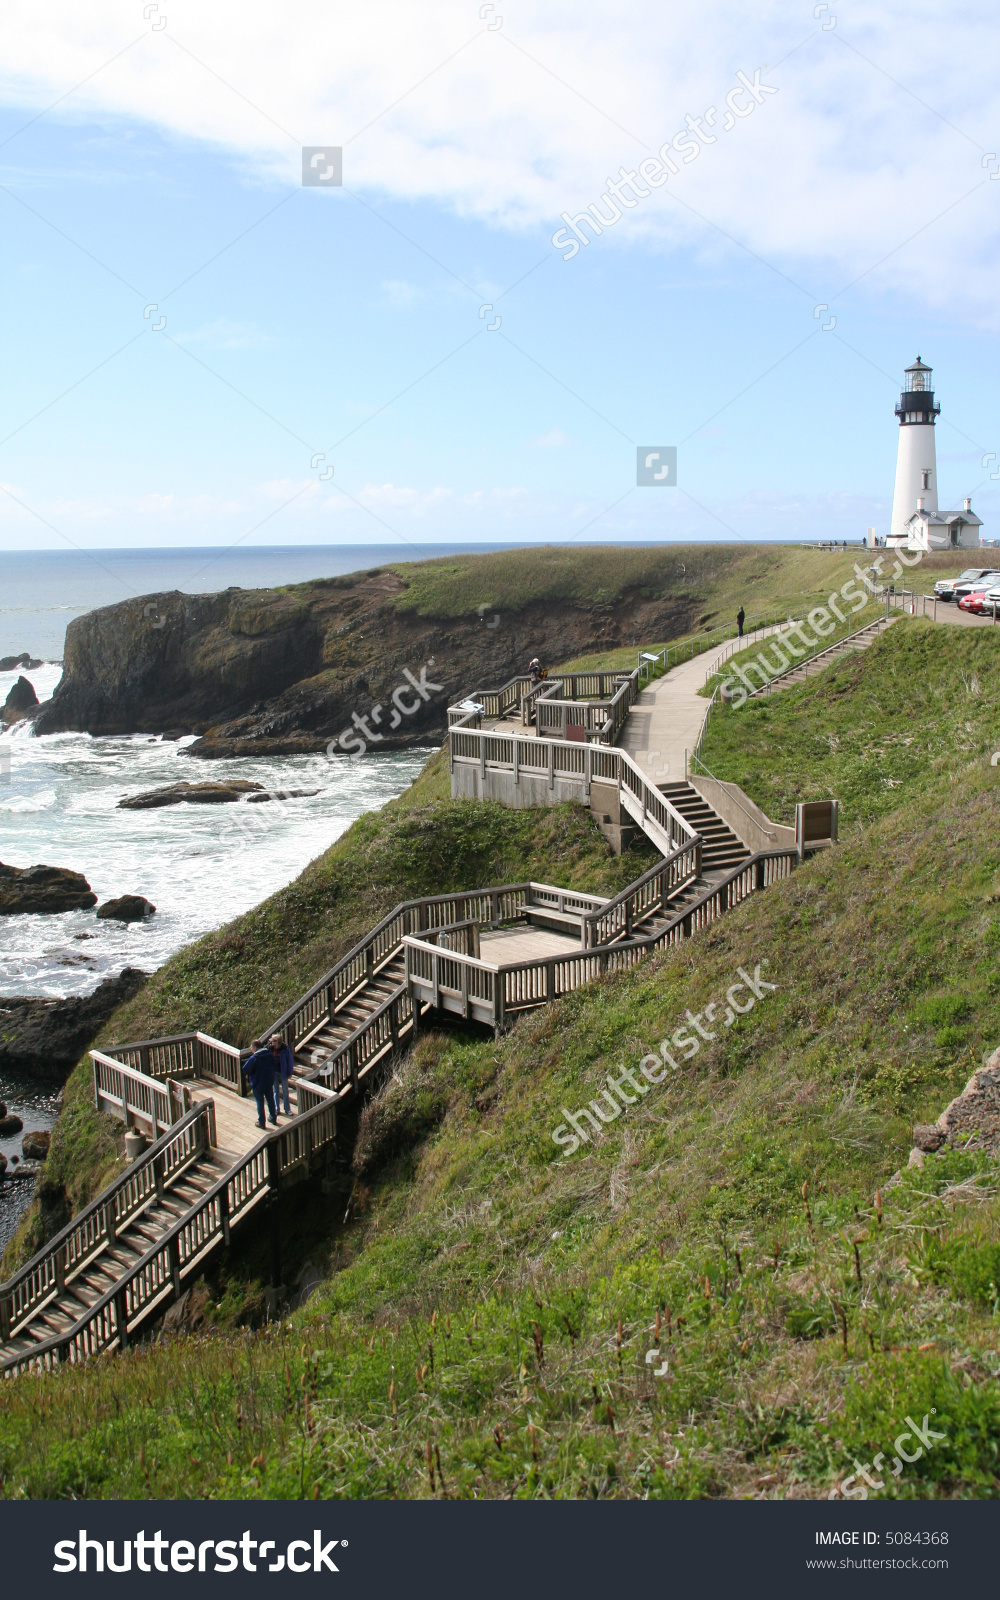 Wooden Stairs To Beach, Misty Day, Yaquina Head Lighthouse, Agate.